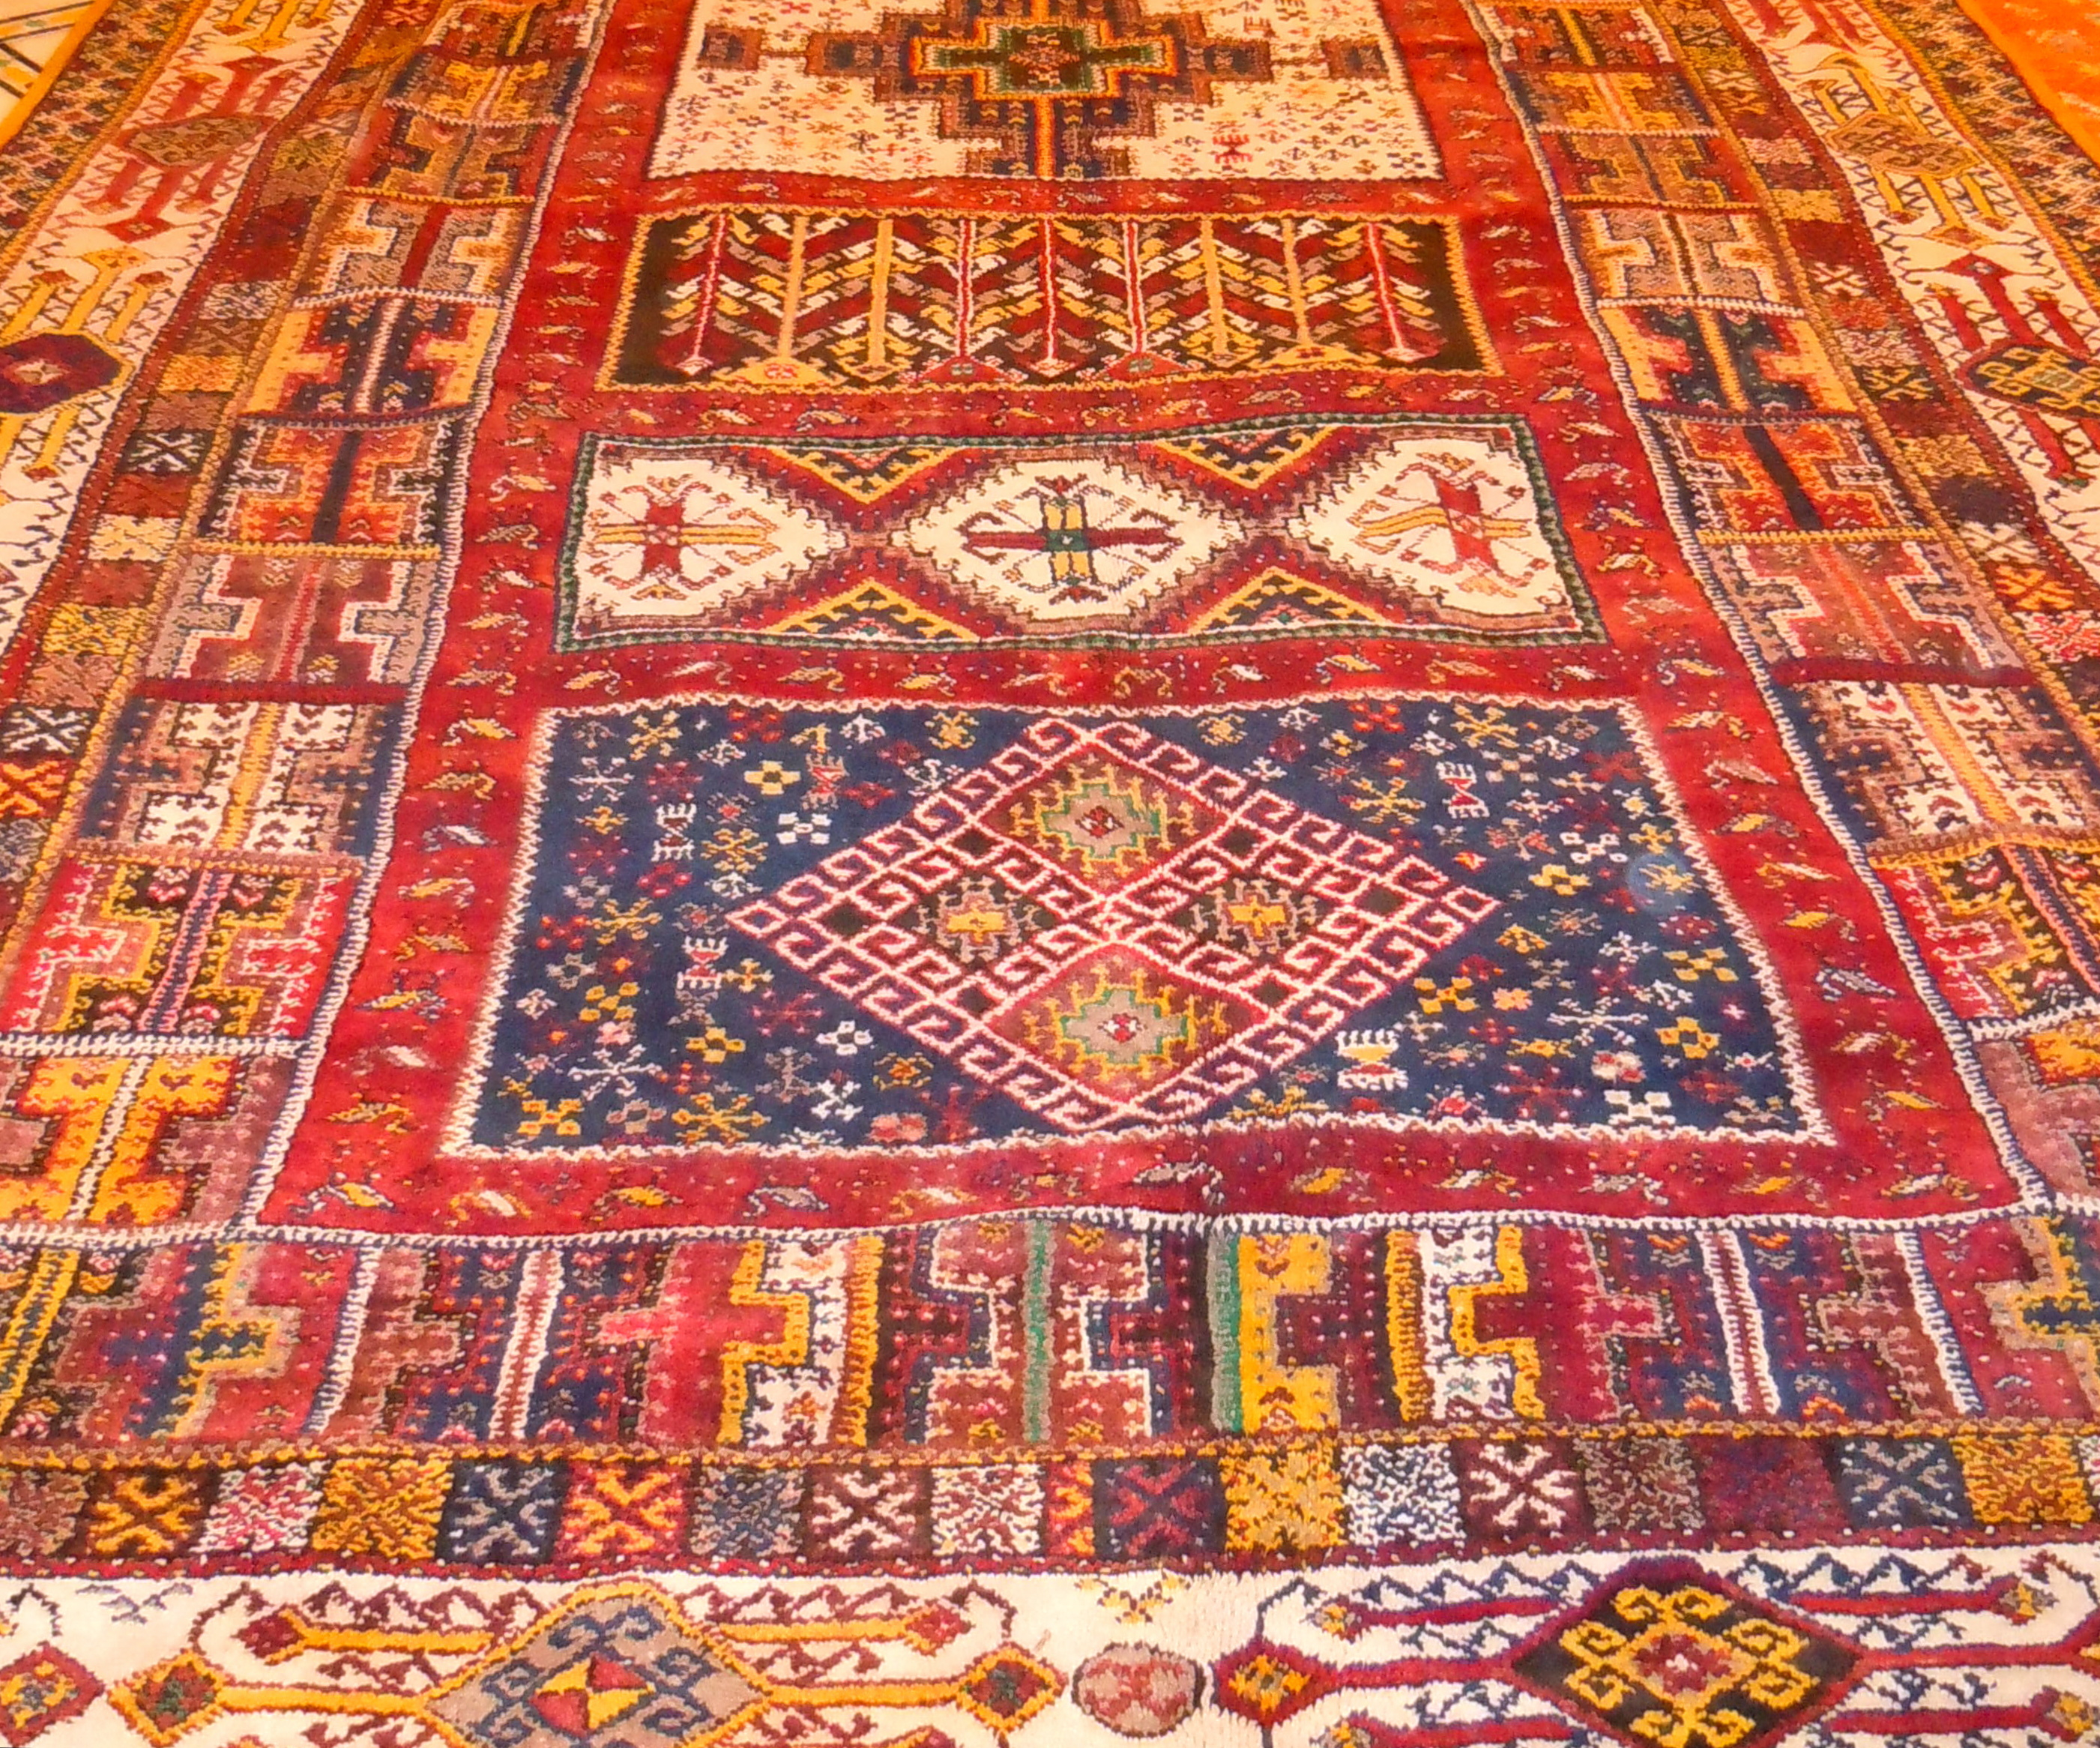 Berber Teppich Rabat Carpets Kelims And Textiles Your Morocco Tour Guide